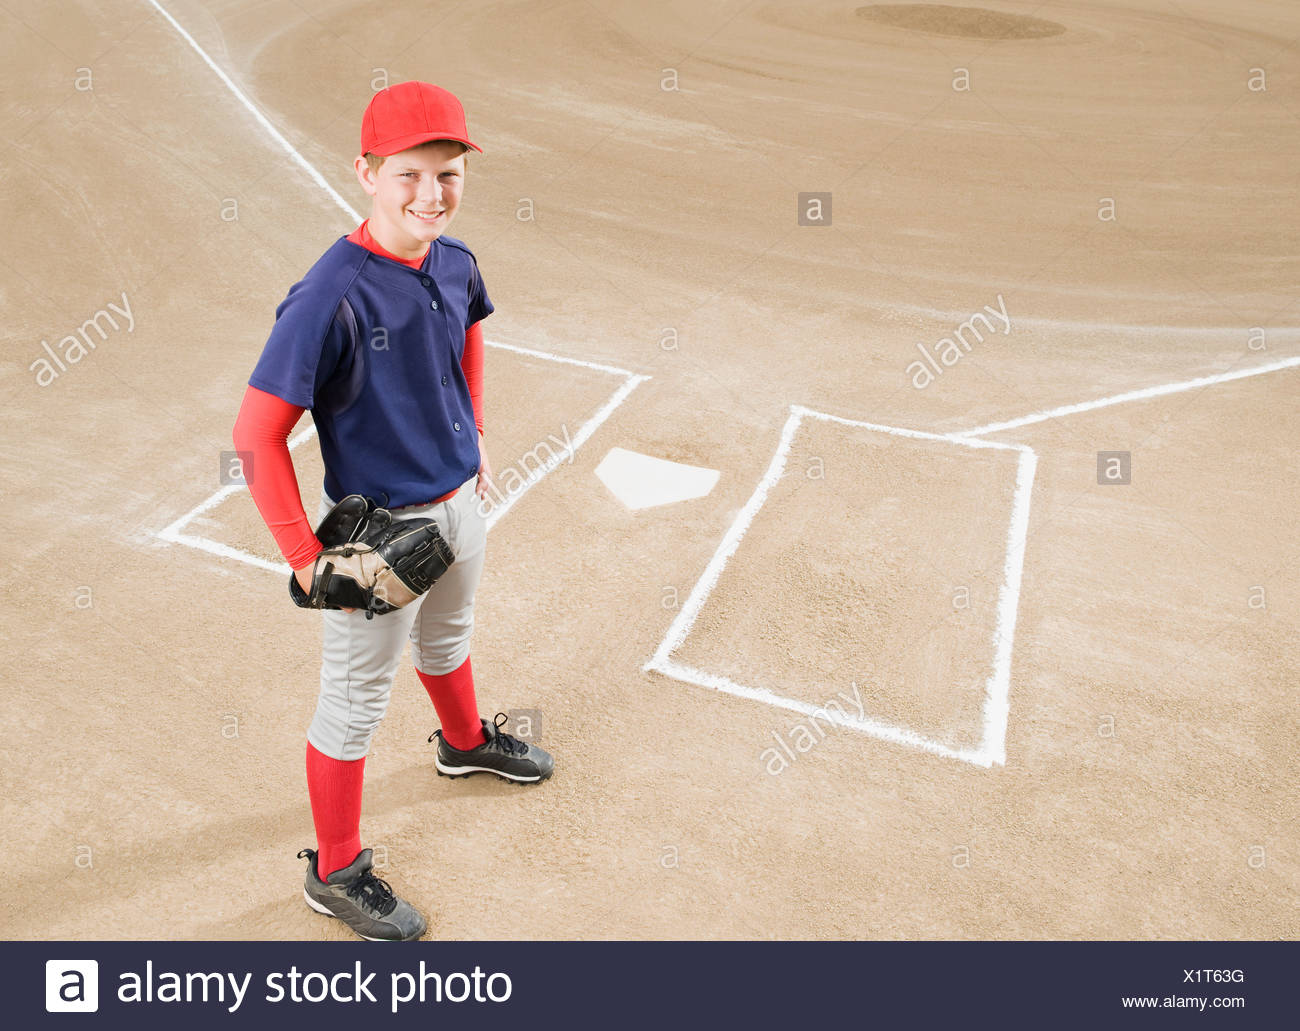 Baseball player in uniform posing by home plate Stock Photo